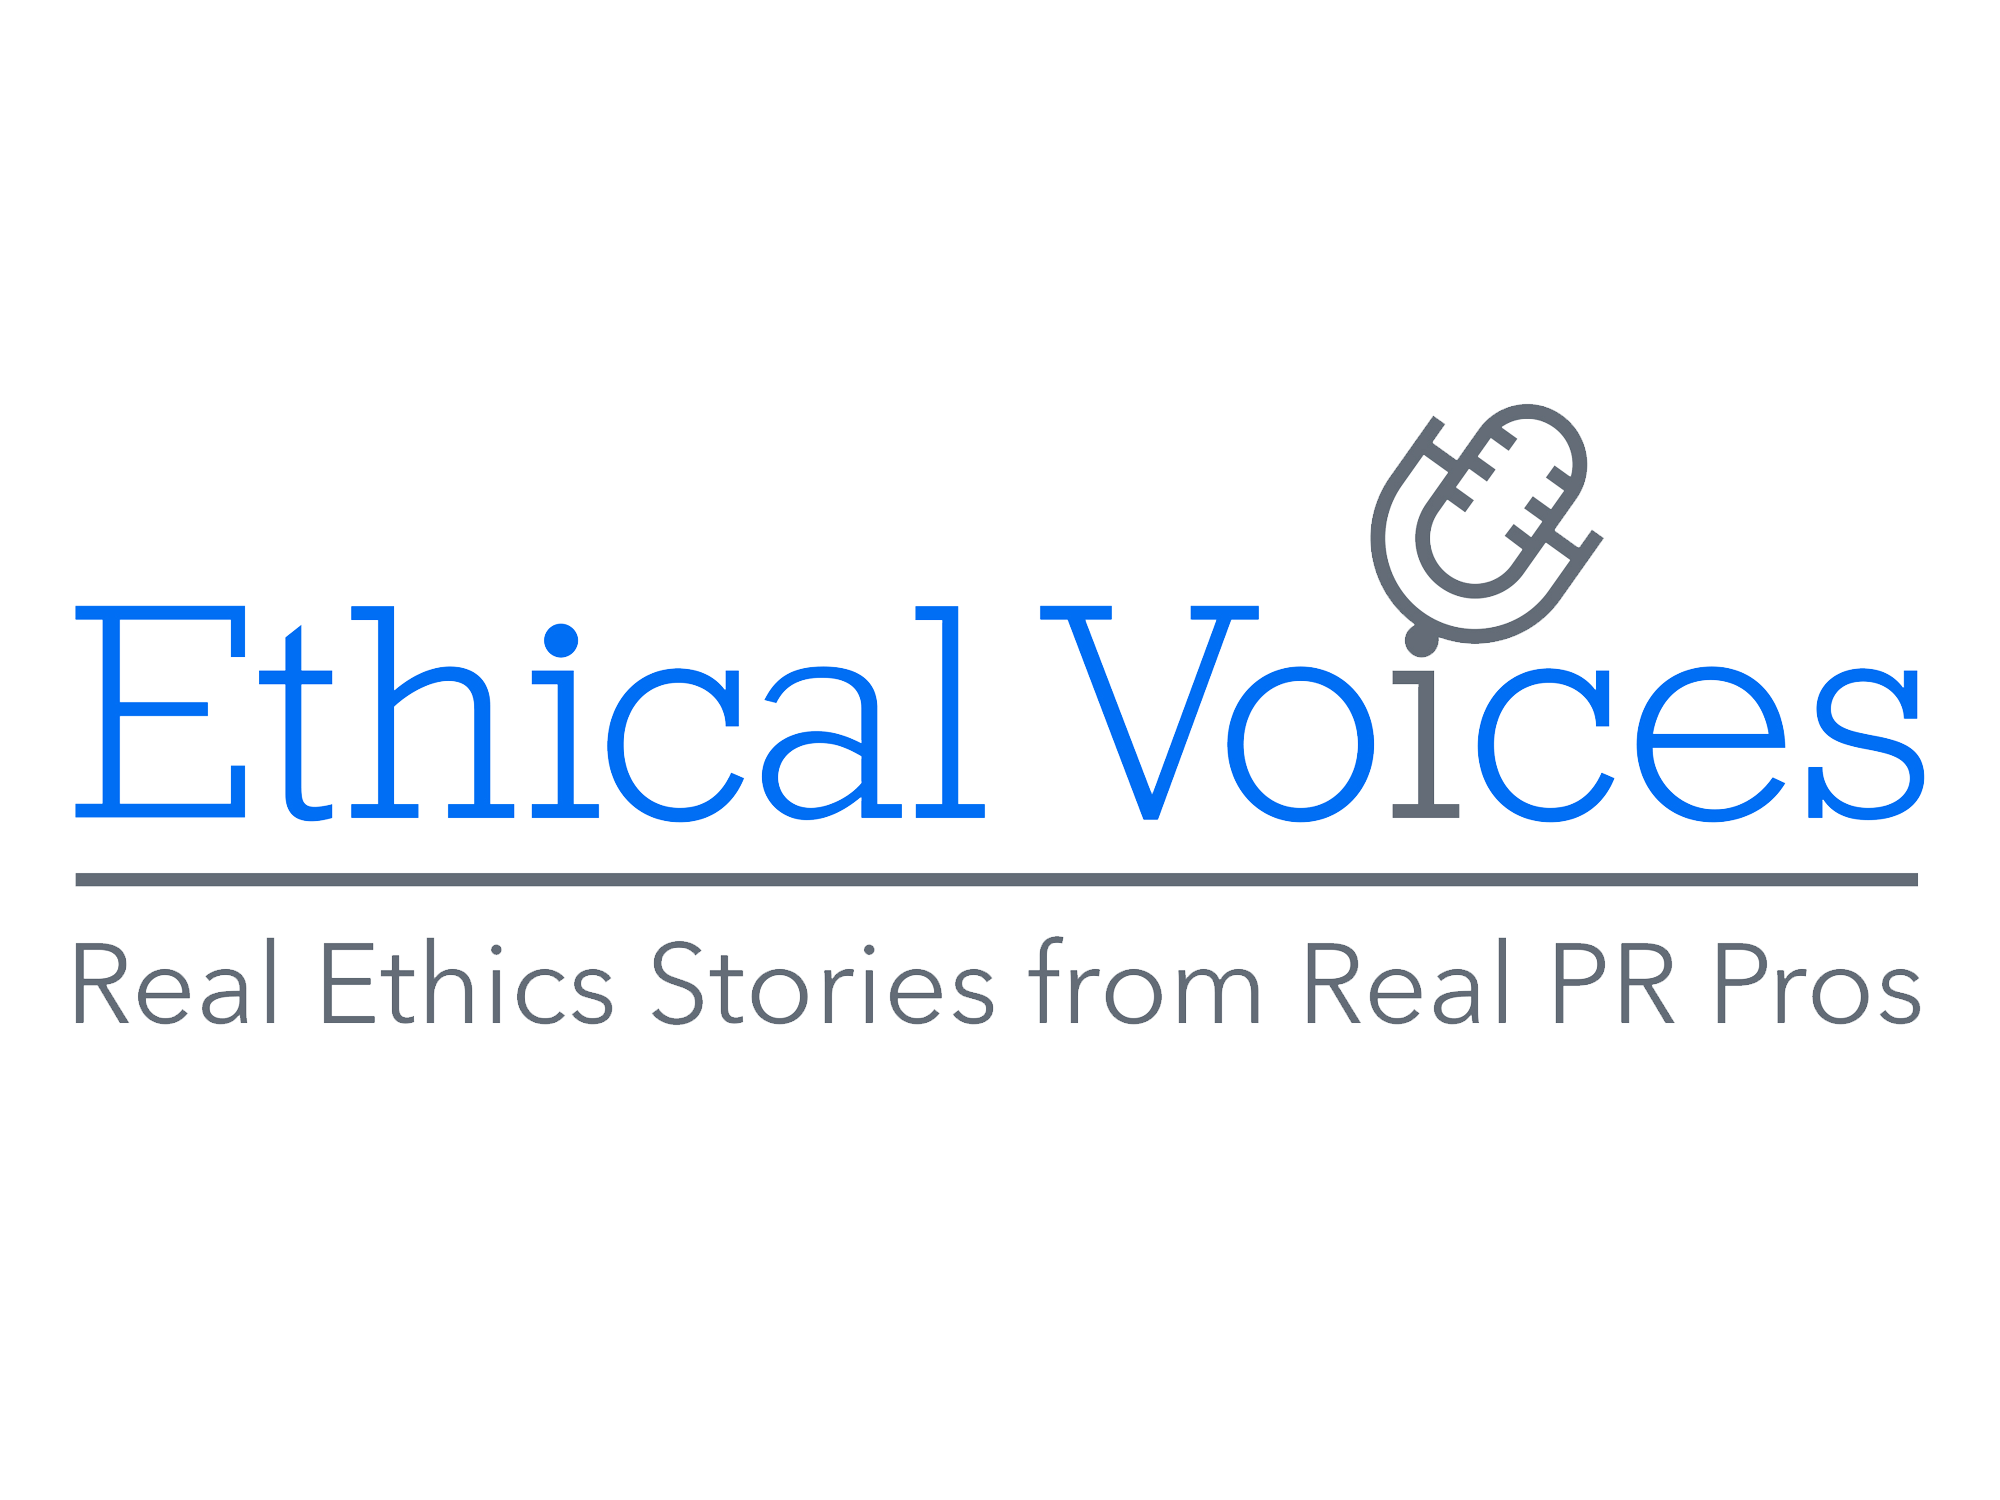 Ethical Voices_2019.08.19_edited, transparent, mounted_FAV.png